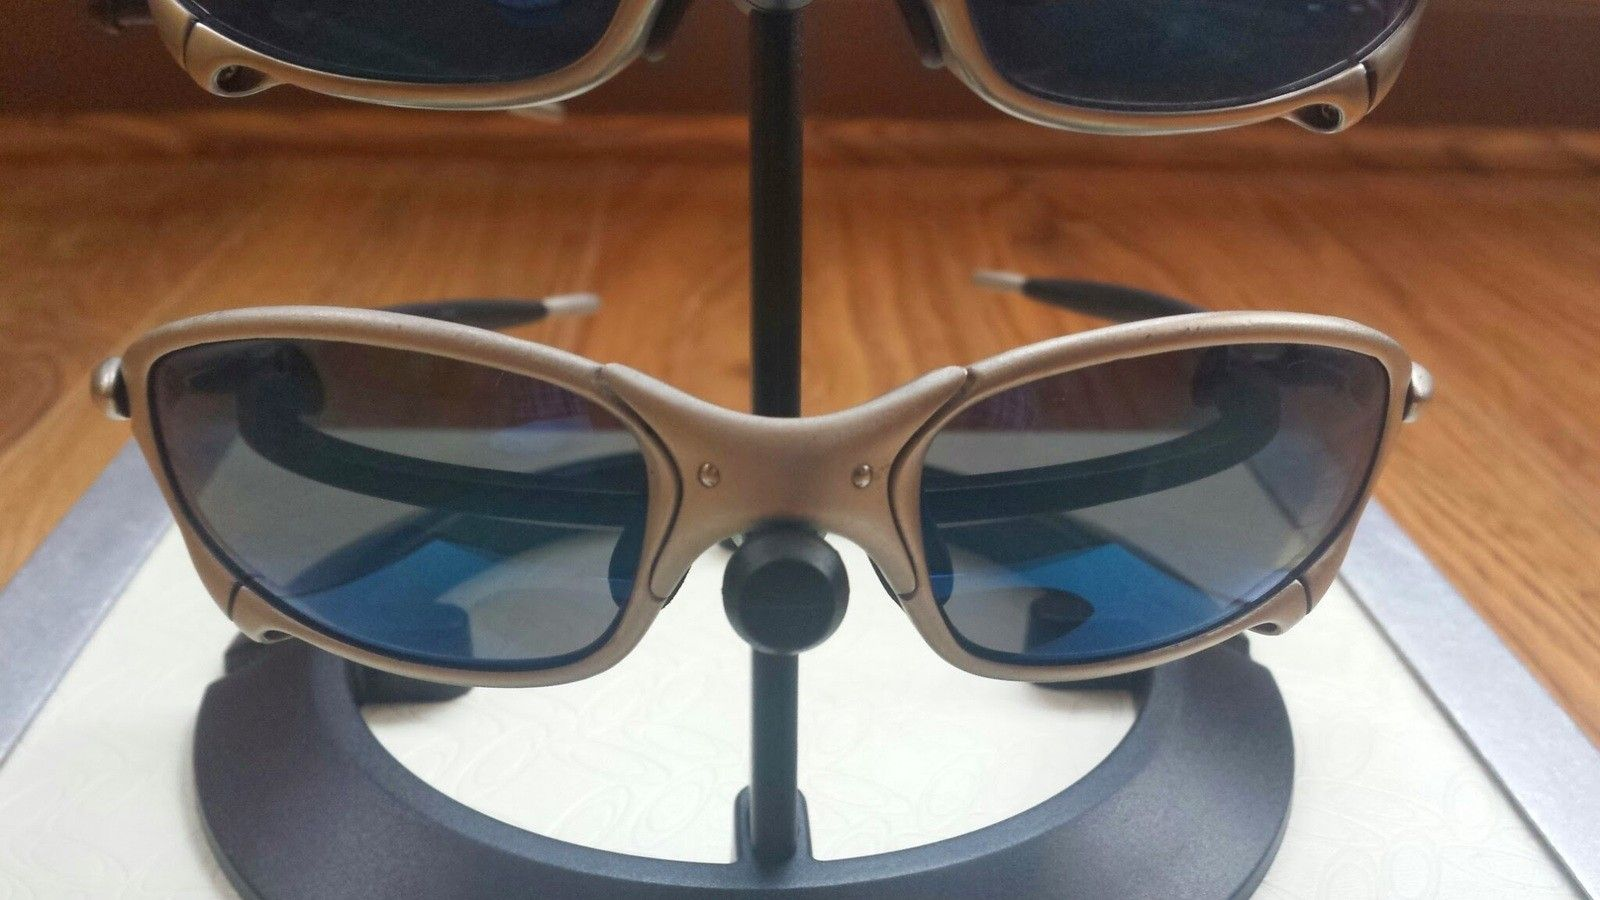 Two Pairs Of Plasma Ice Juliets + A Spare Pair Of Lenses - 20140402_184610.jpg